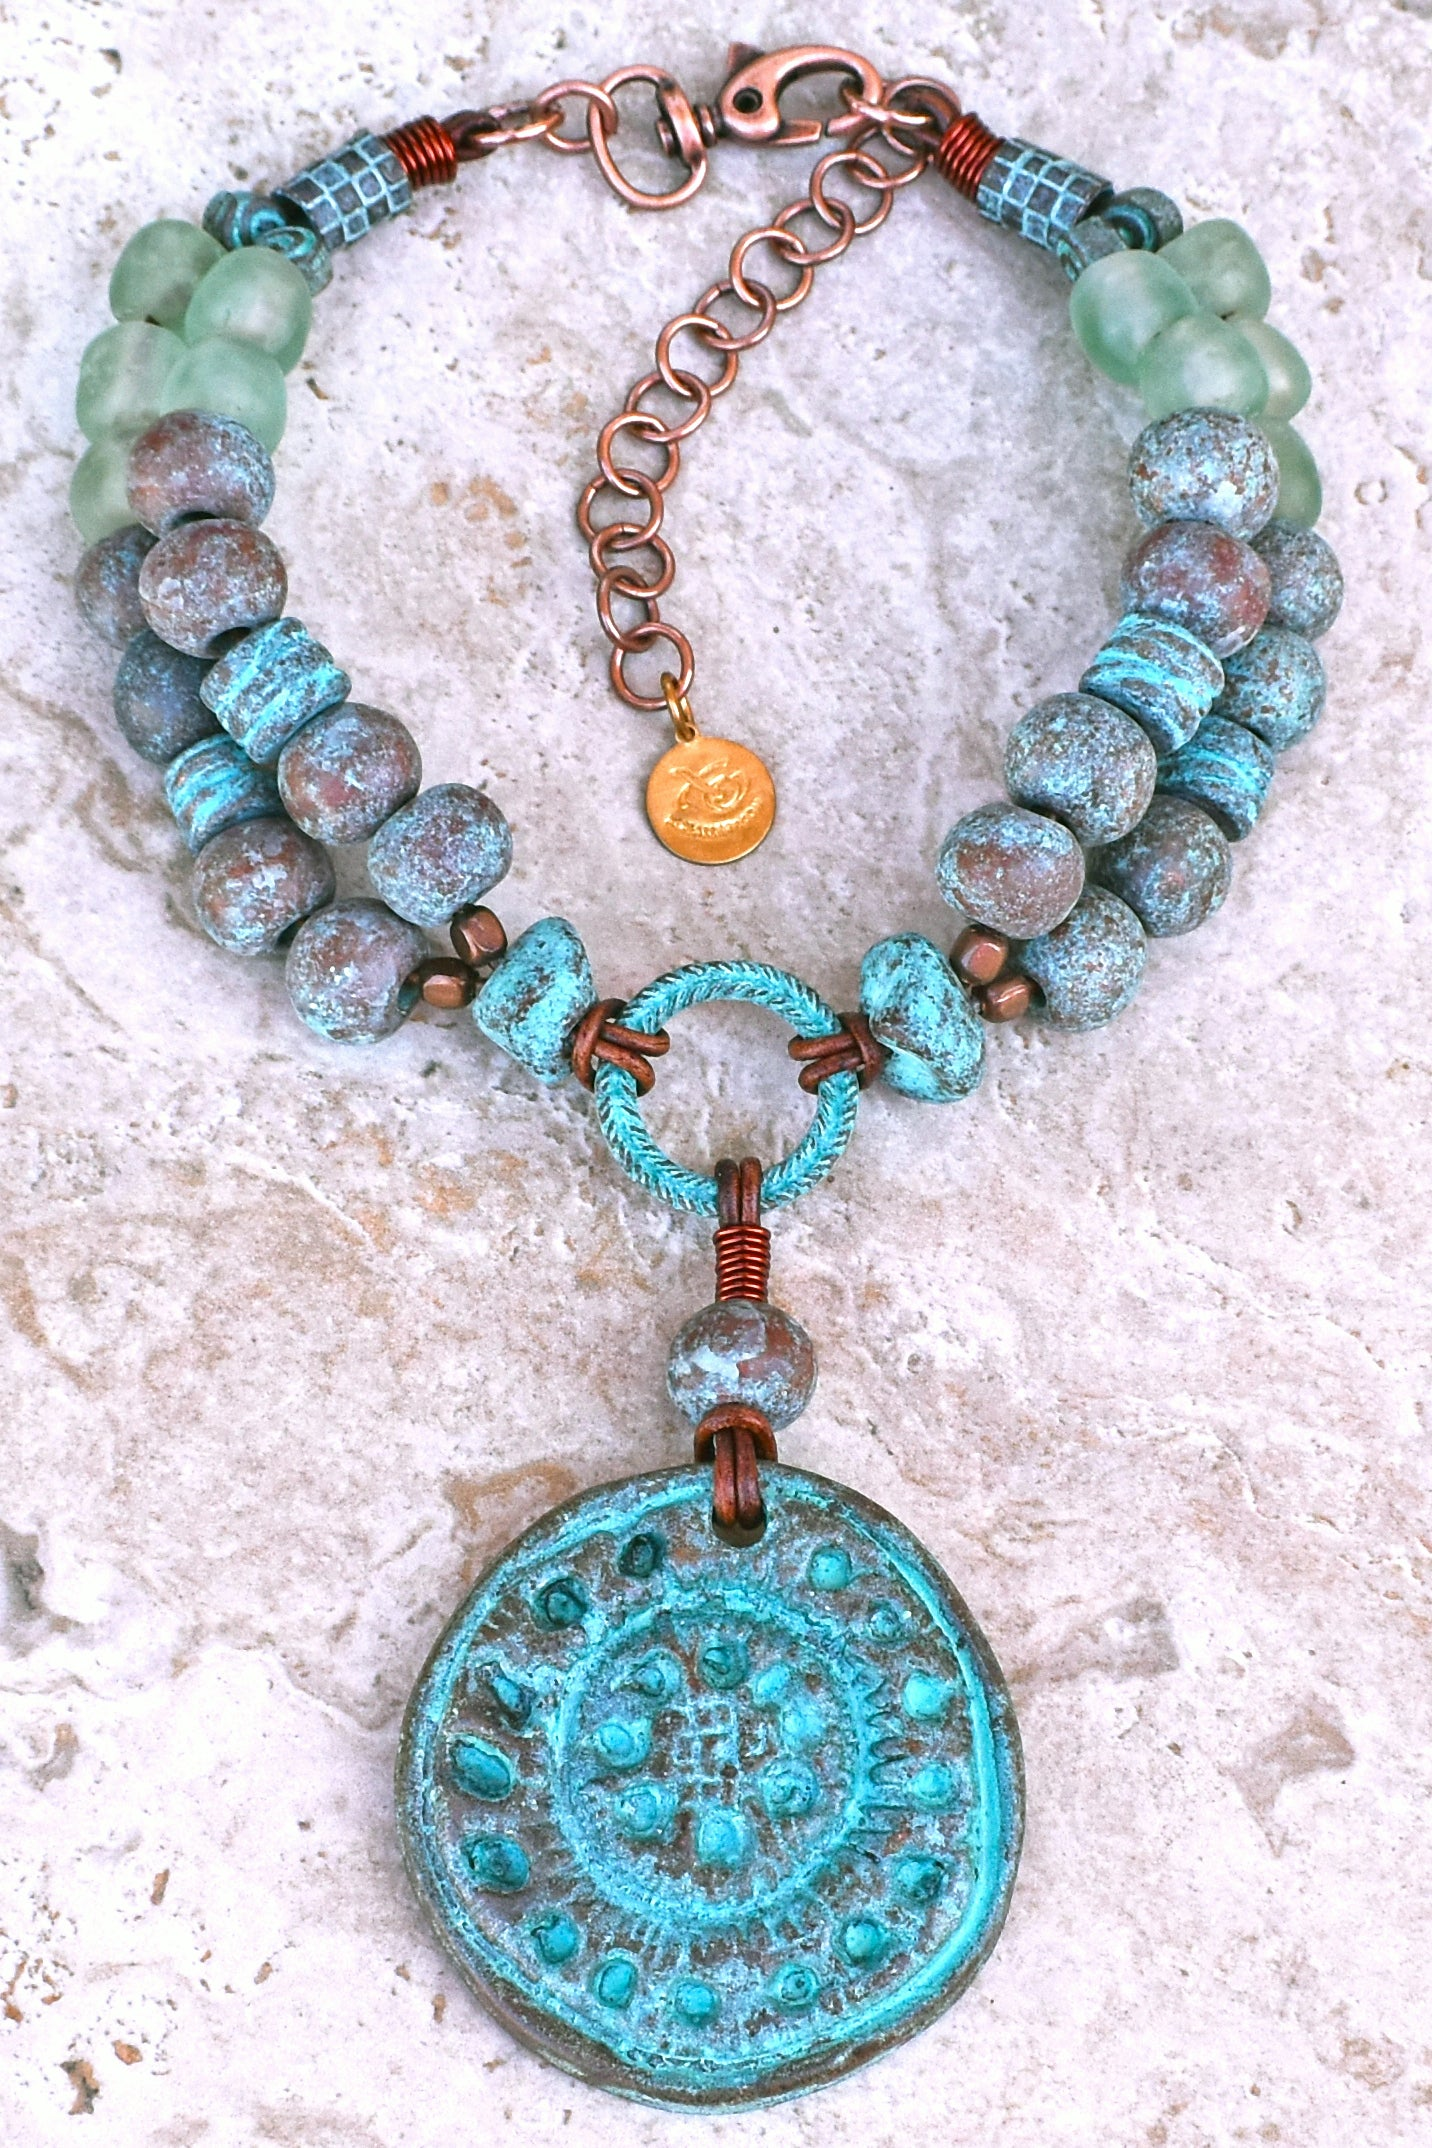 Bold & Dramatic Blue Glass and Grecian Warrior Shield Choker Necklace